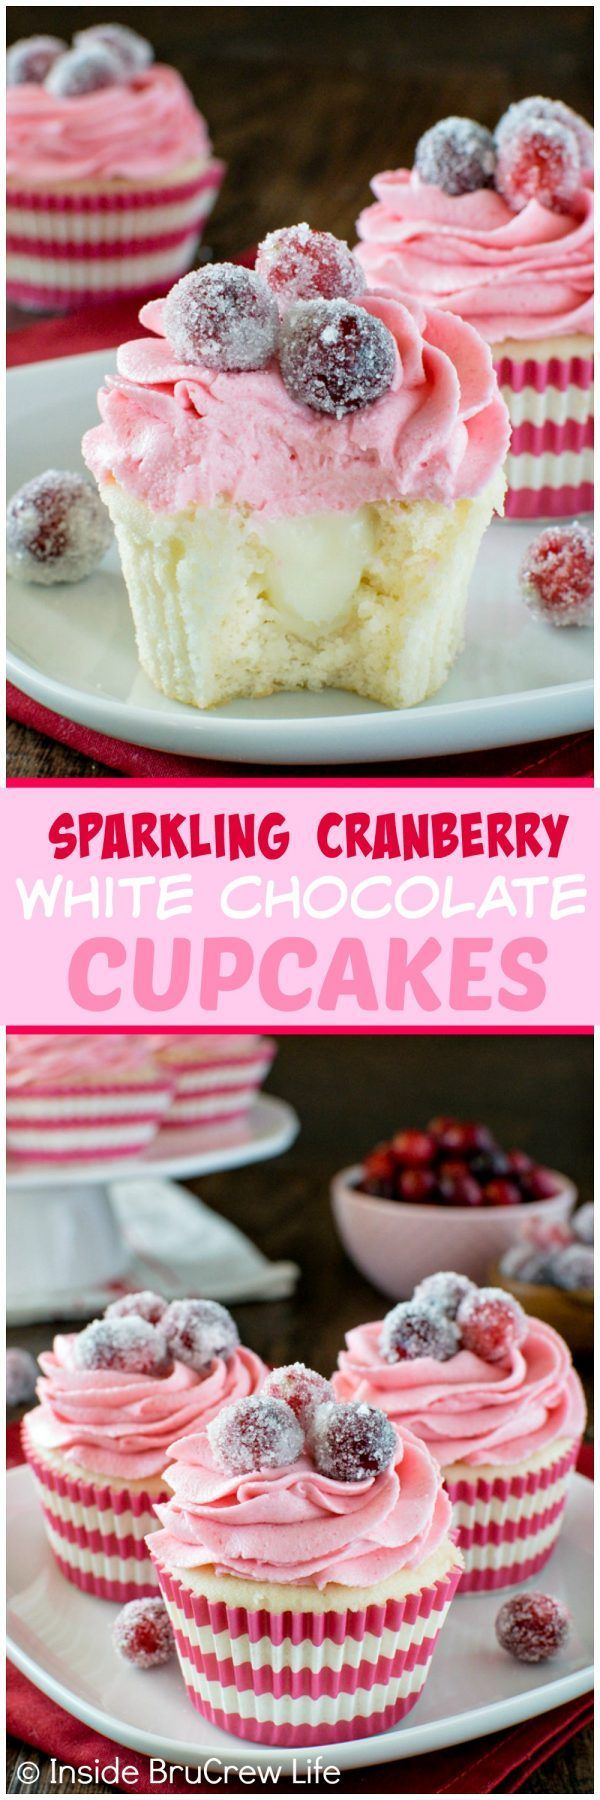 Sparkling Cranberry White Chocolate Cupcakes - a hidden creamy center & fresh berry frosting makes these cupcakes a fun recipe to make for your holiday dessert tables.